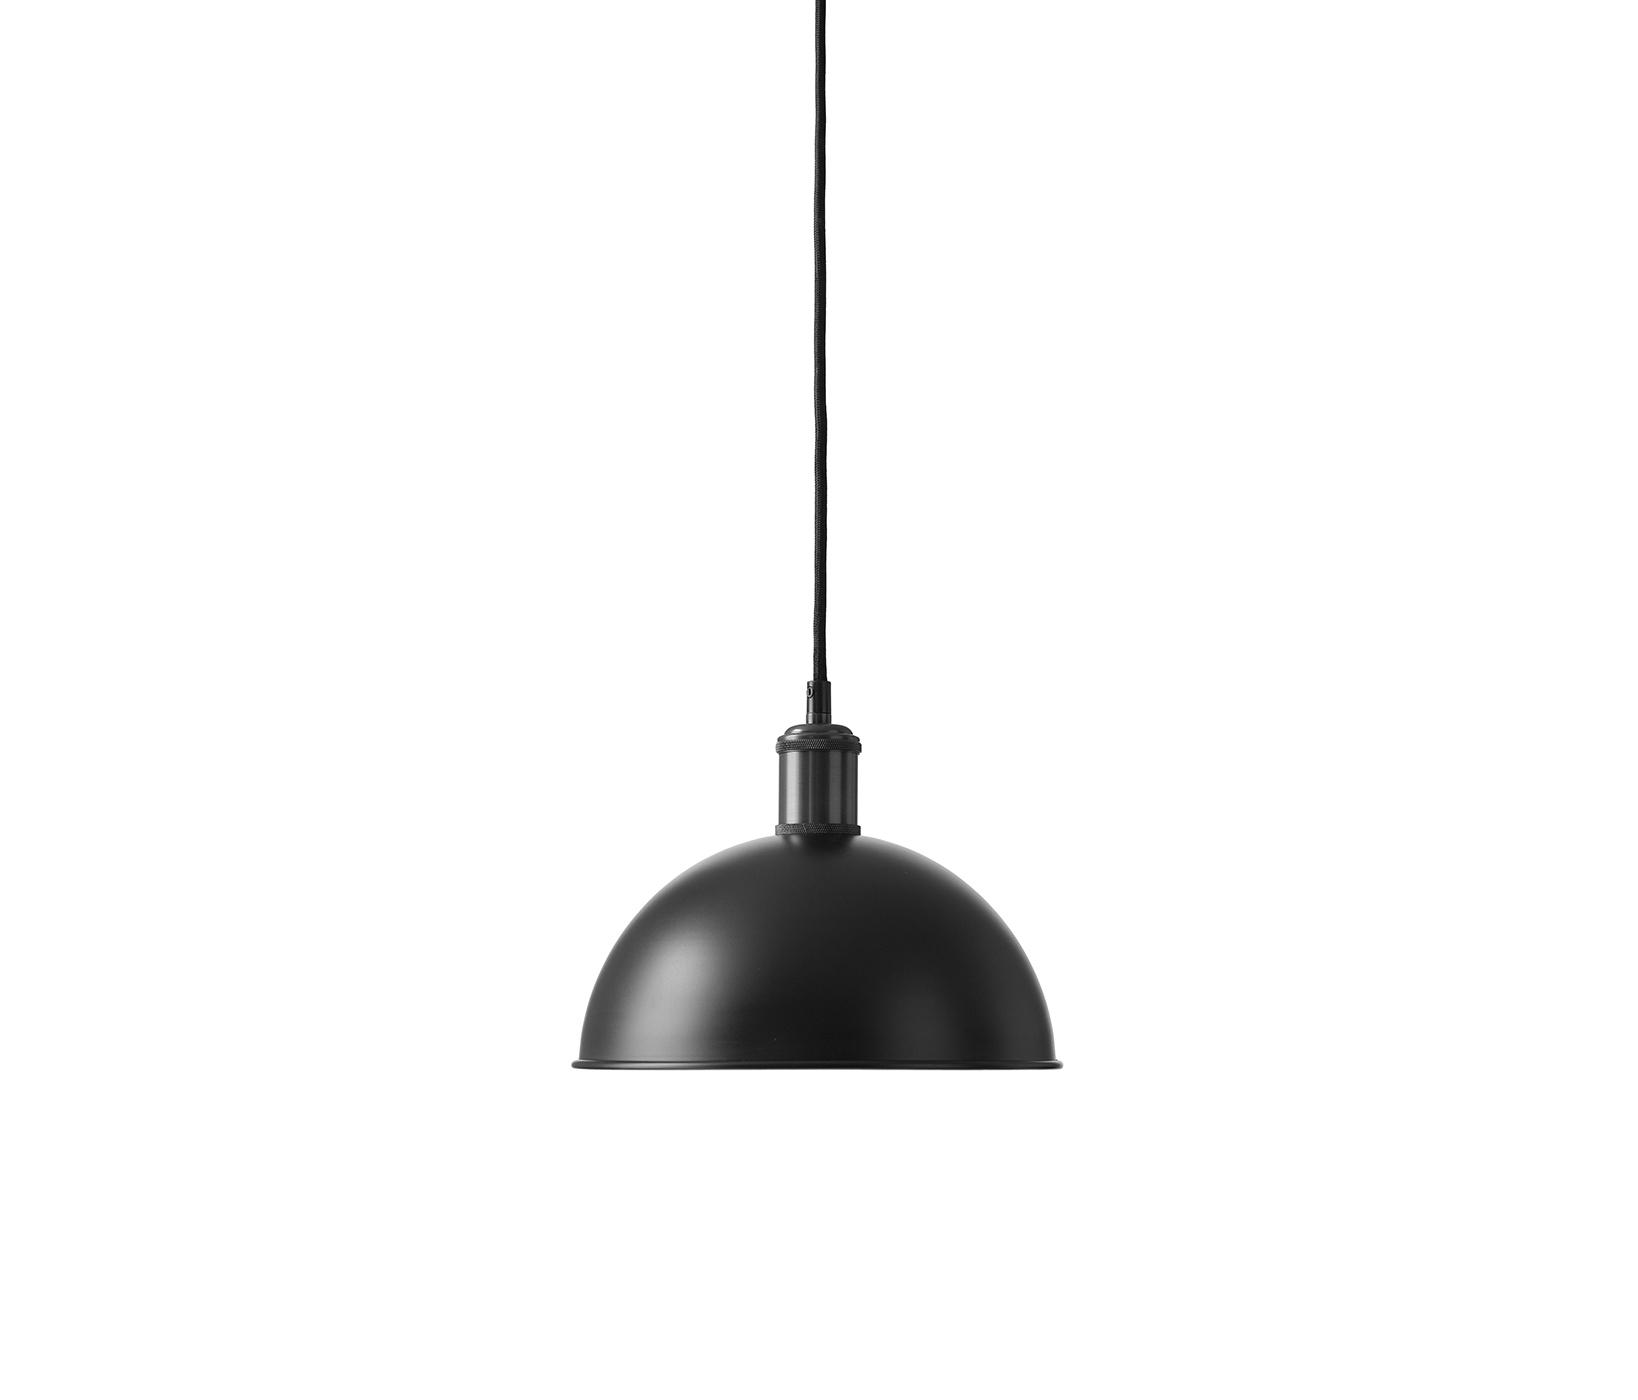 lamp light out shade product black metal loft pendant cut industrial cafe vintage